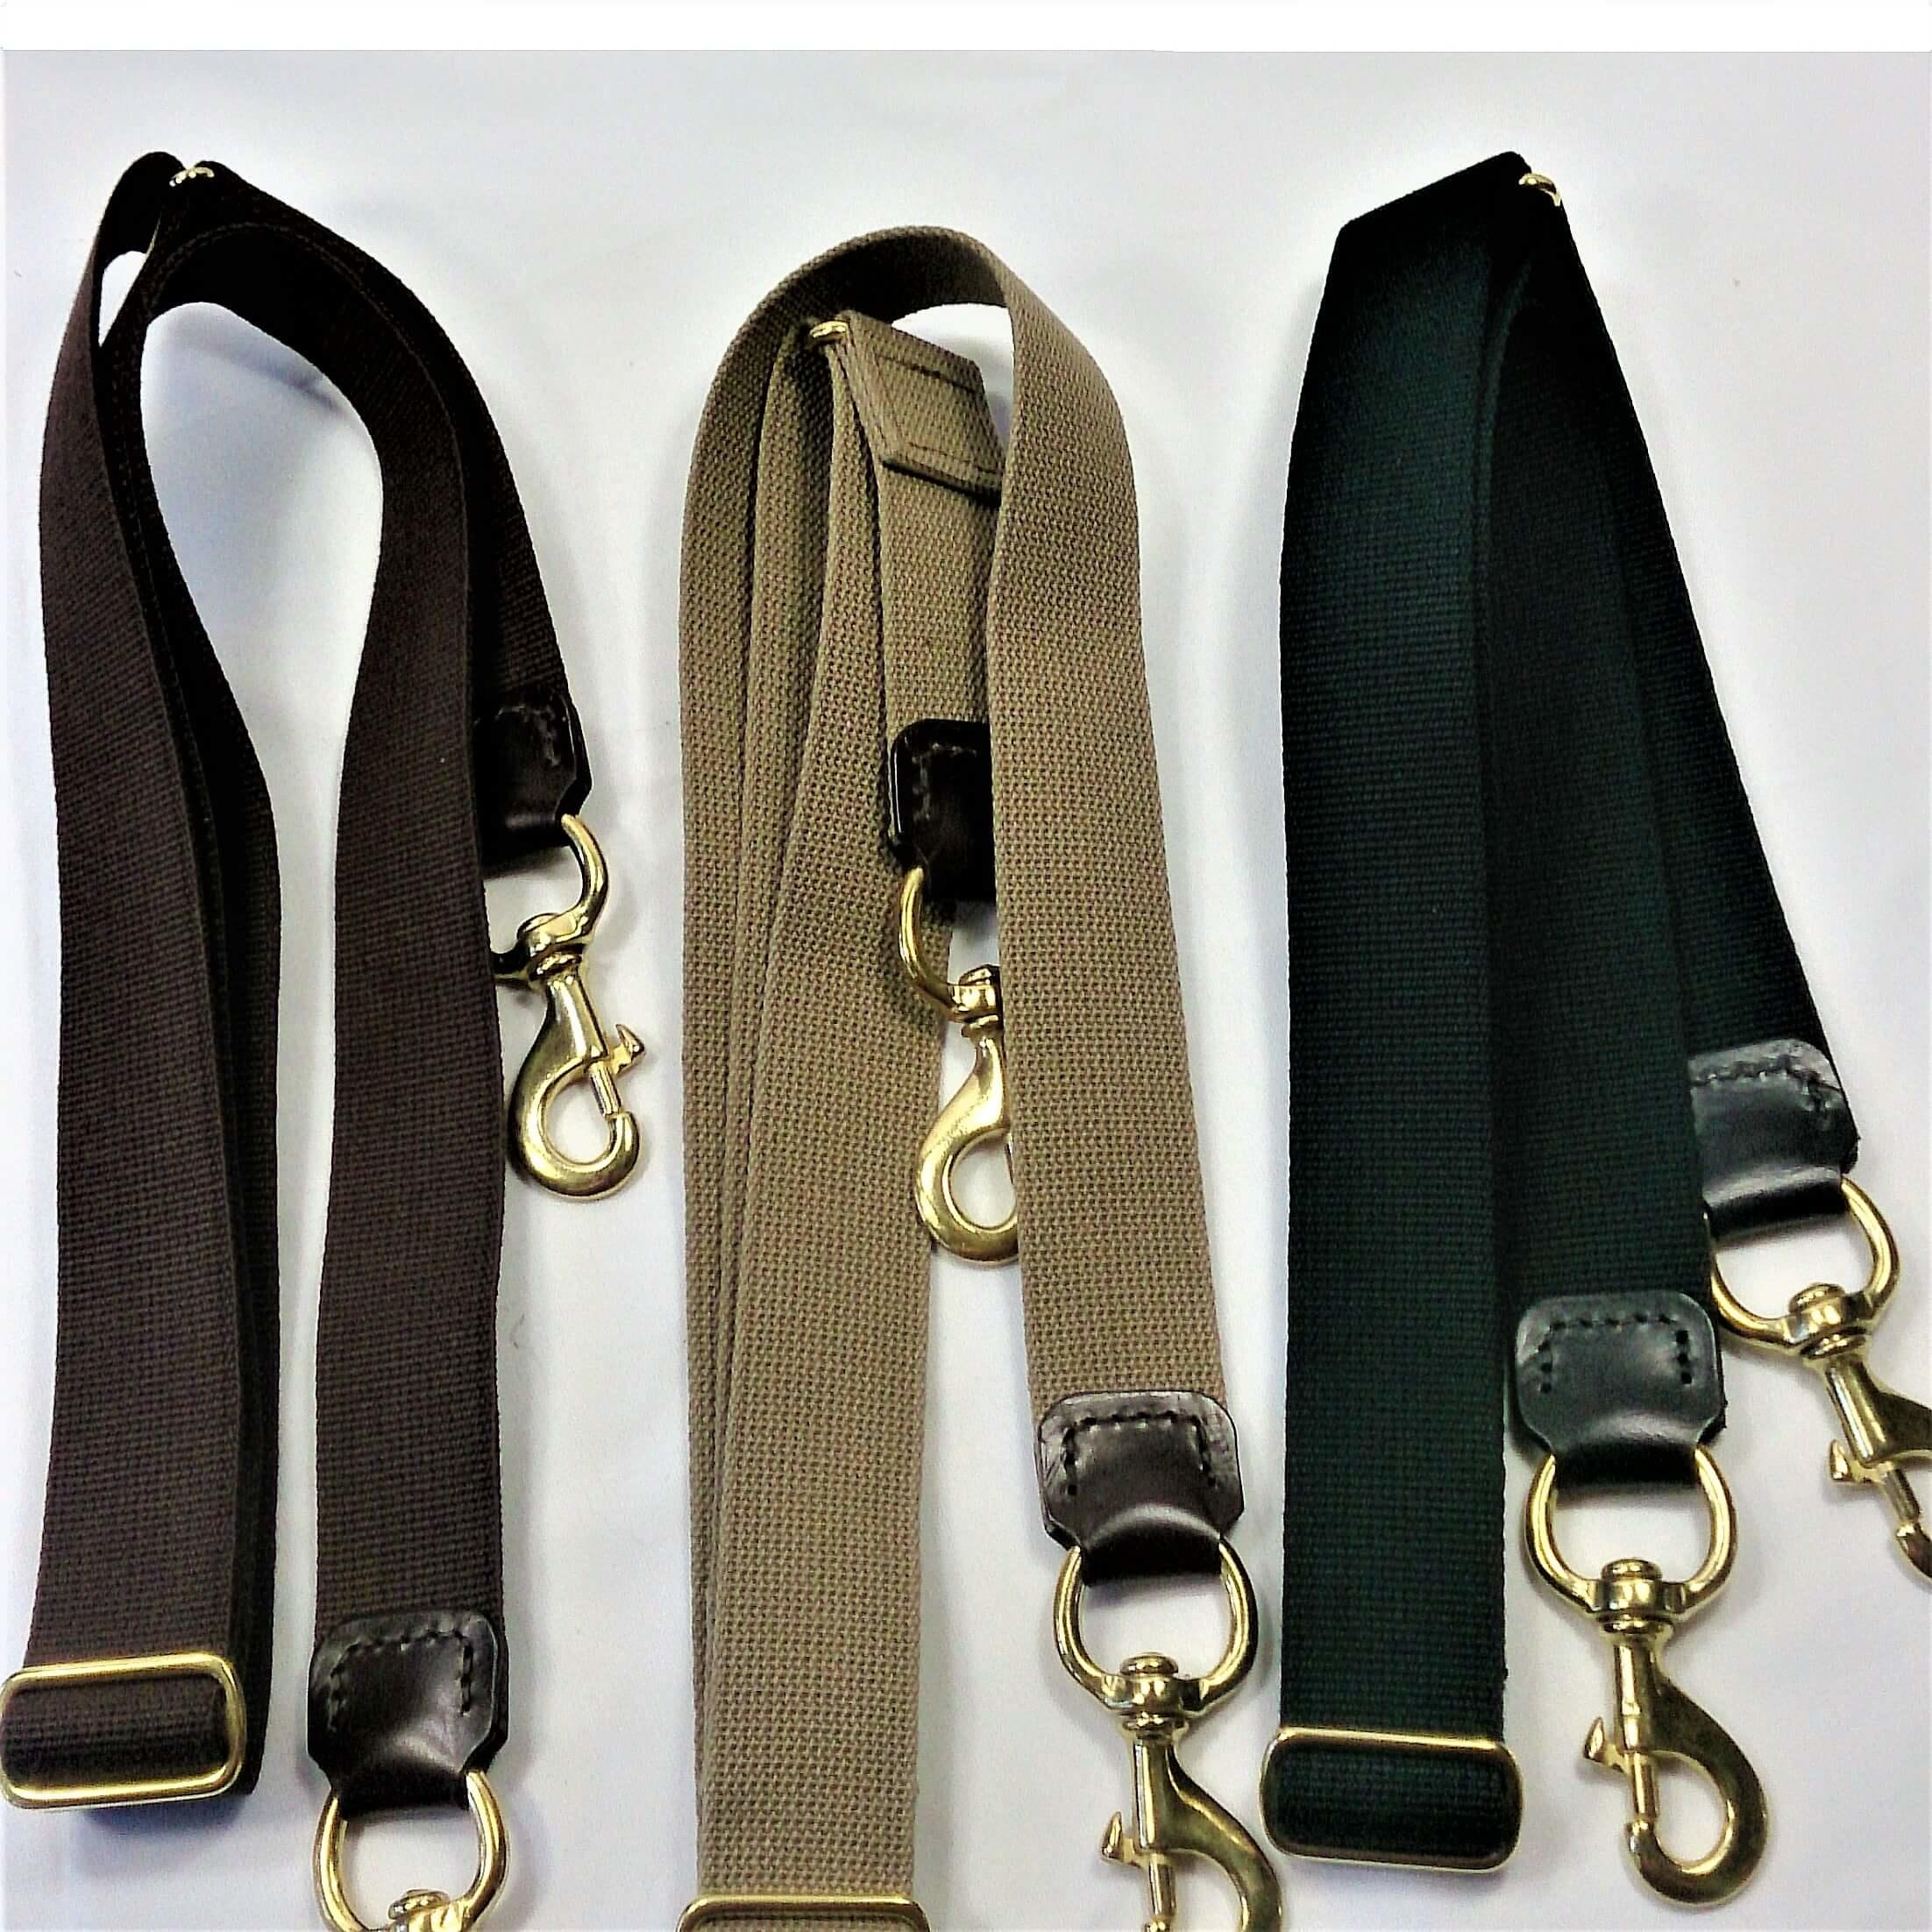 Replacement Shoulder Strap For Messengers-Briefcases-Laptop Bags Webbed Canvass & Brass